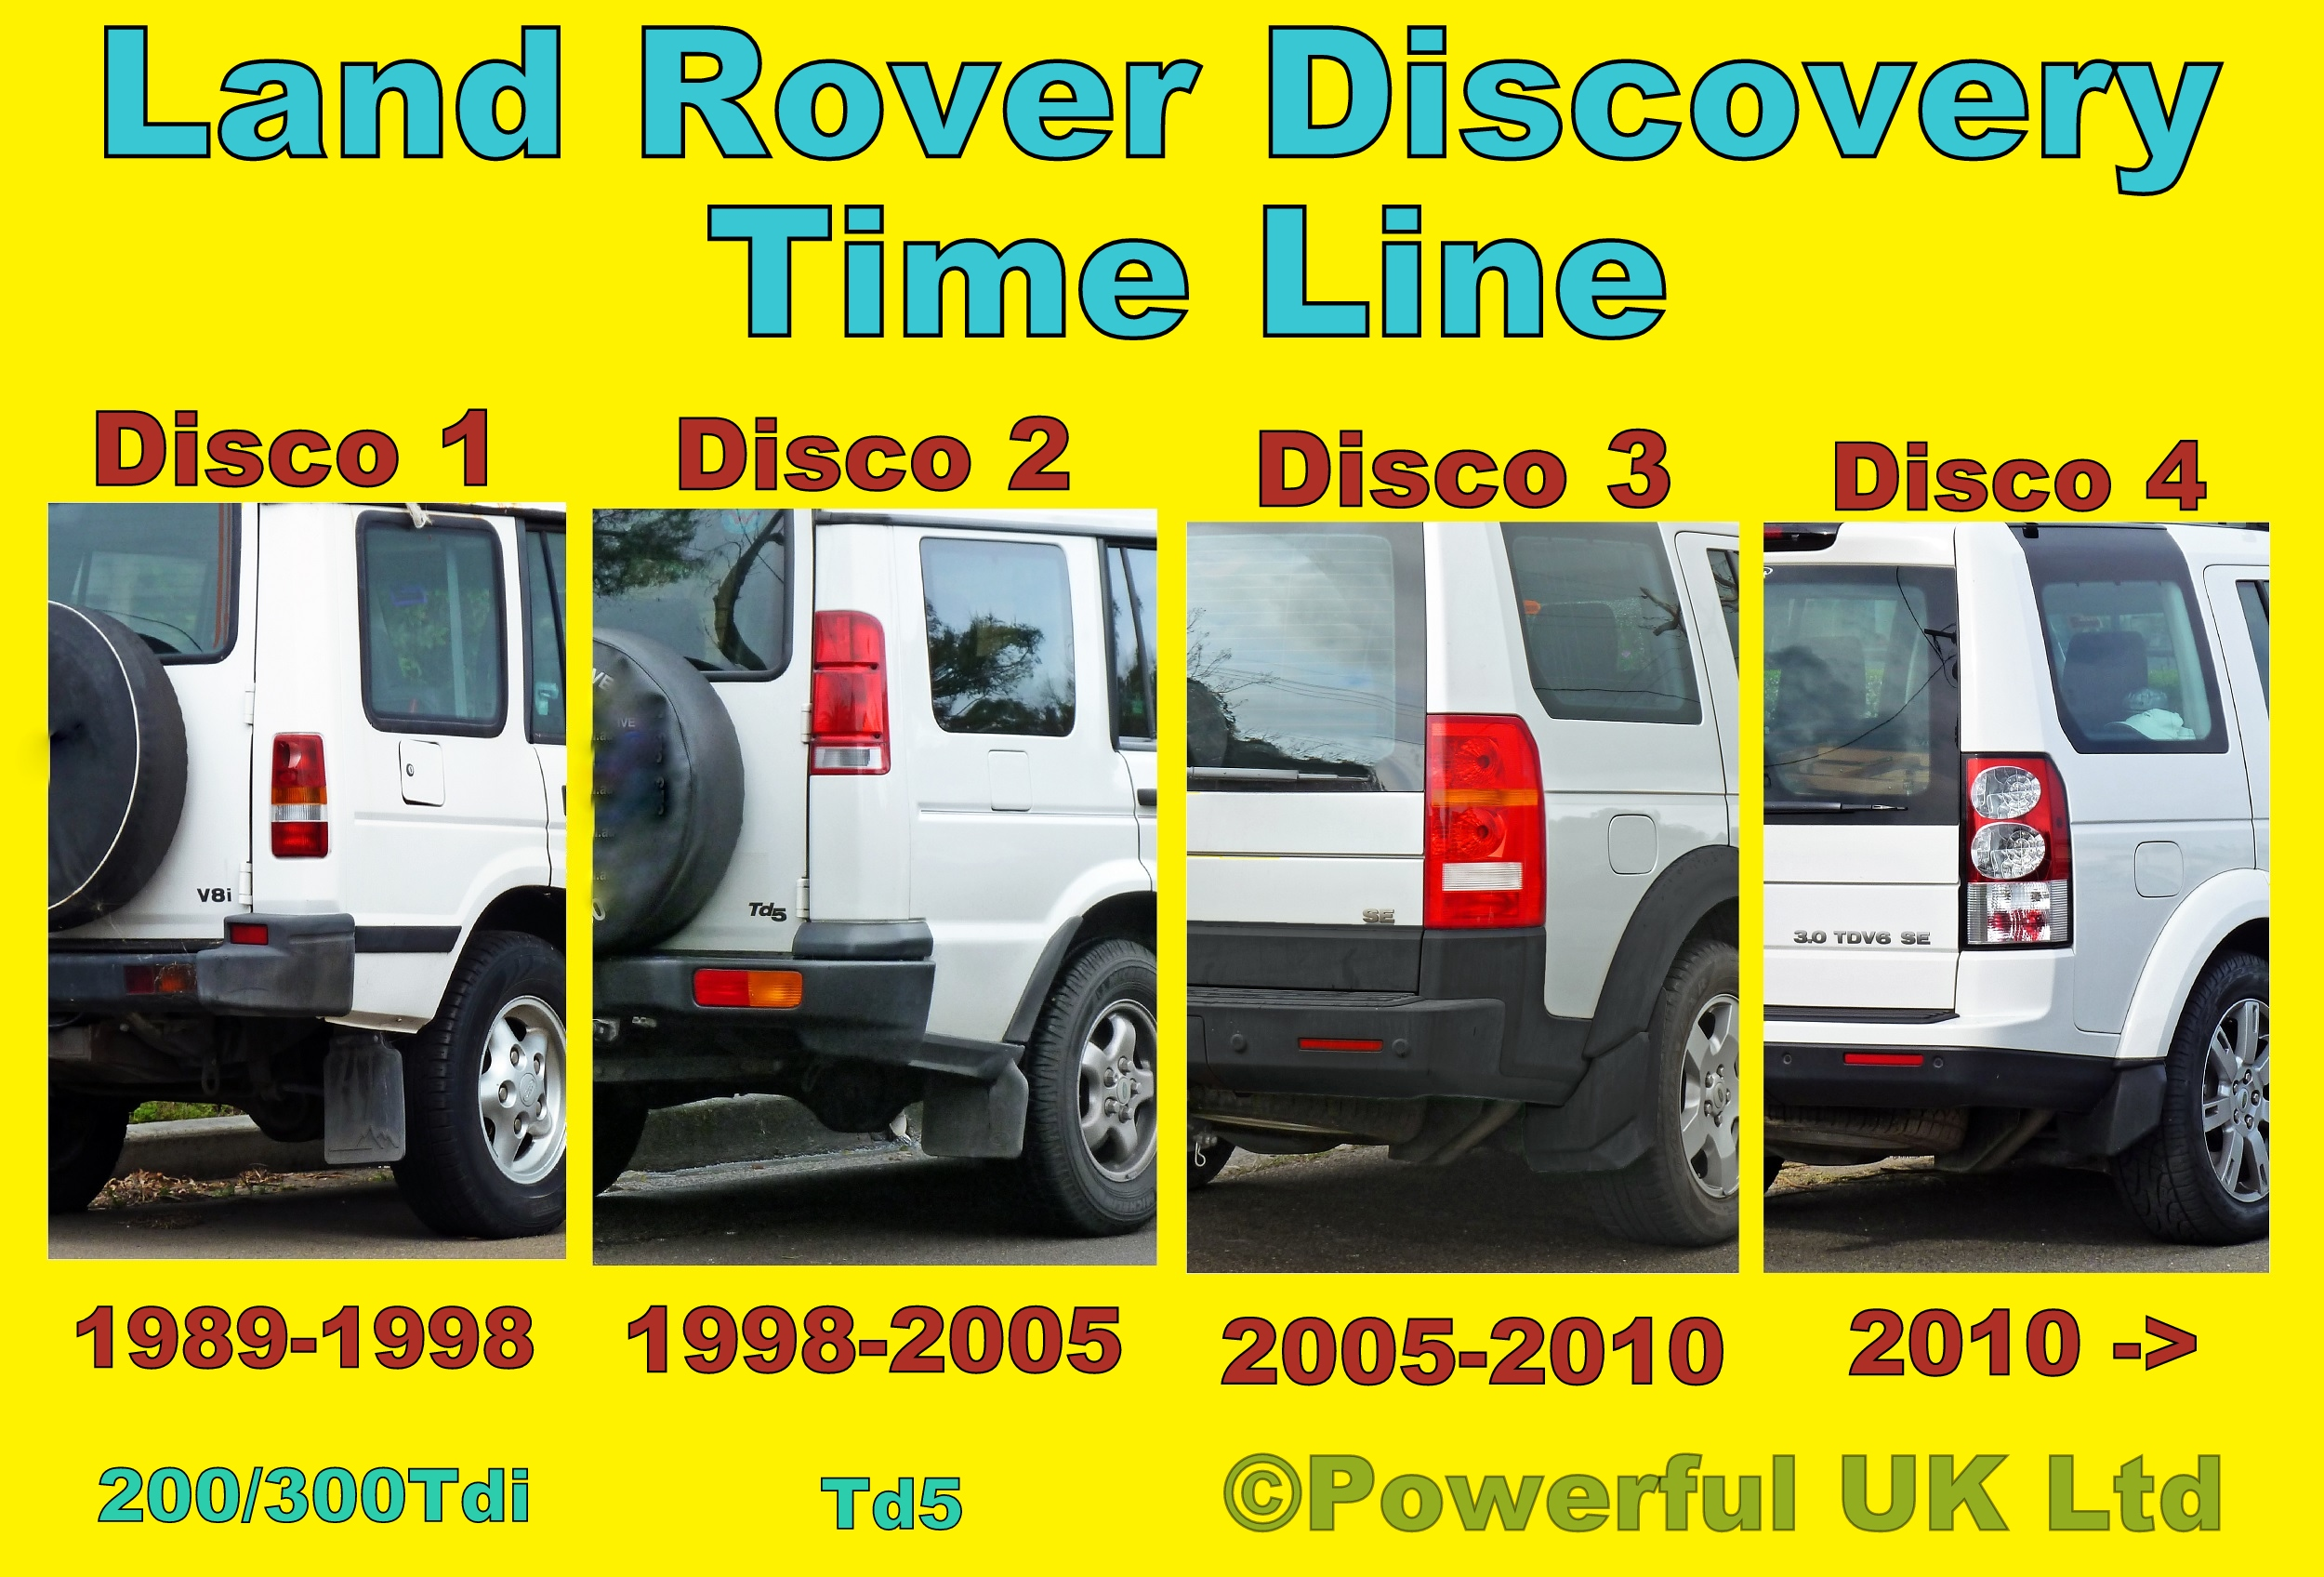 forums rover land s style offroad landrover express me viewtopic discovery learn parts image disco